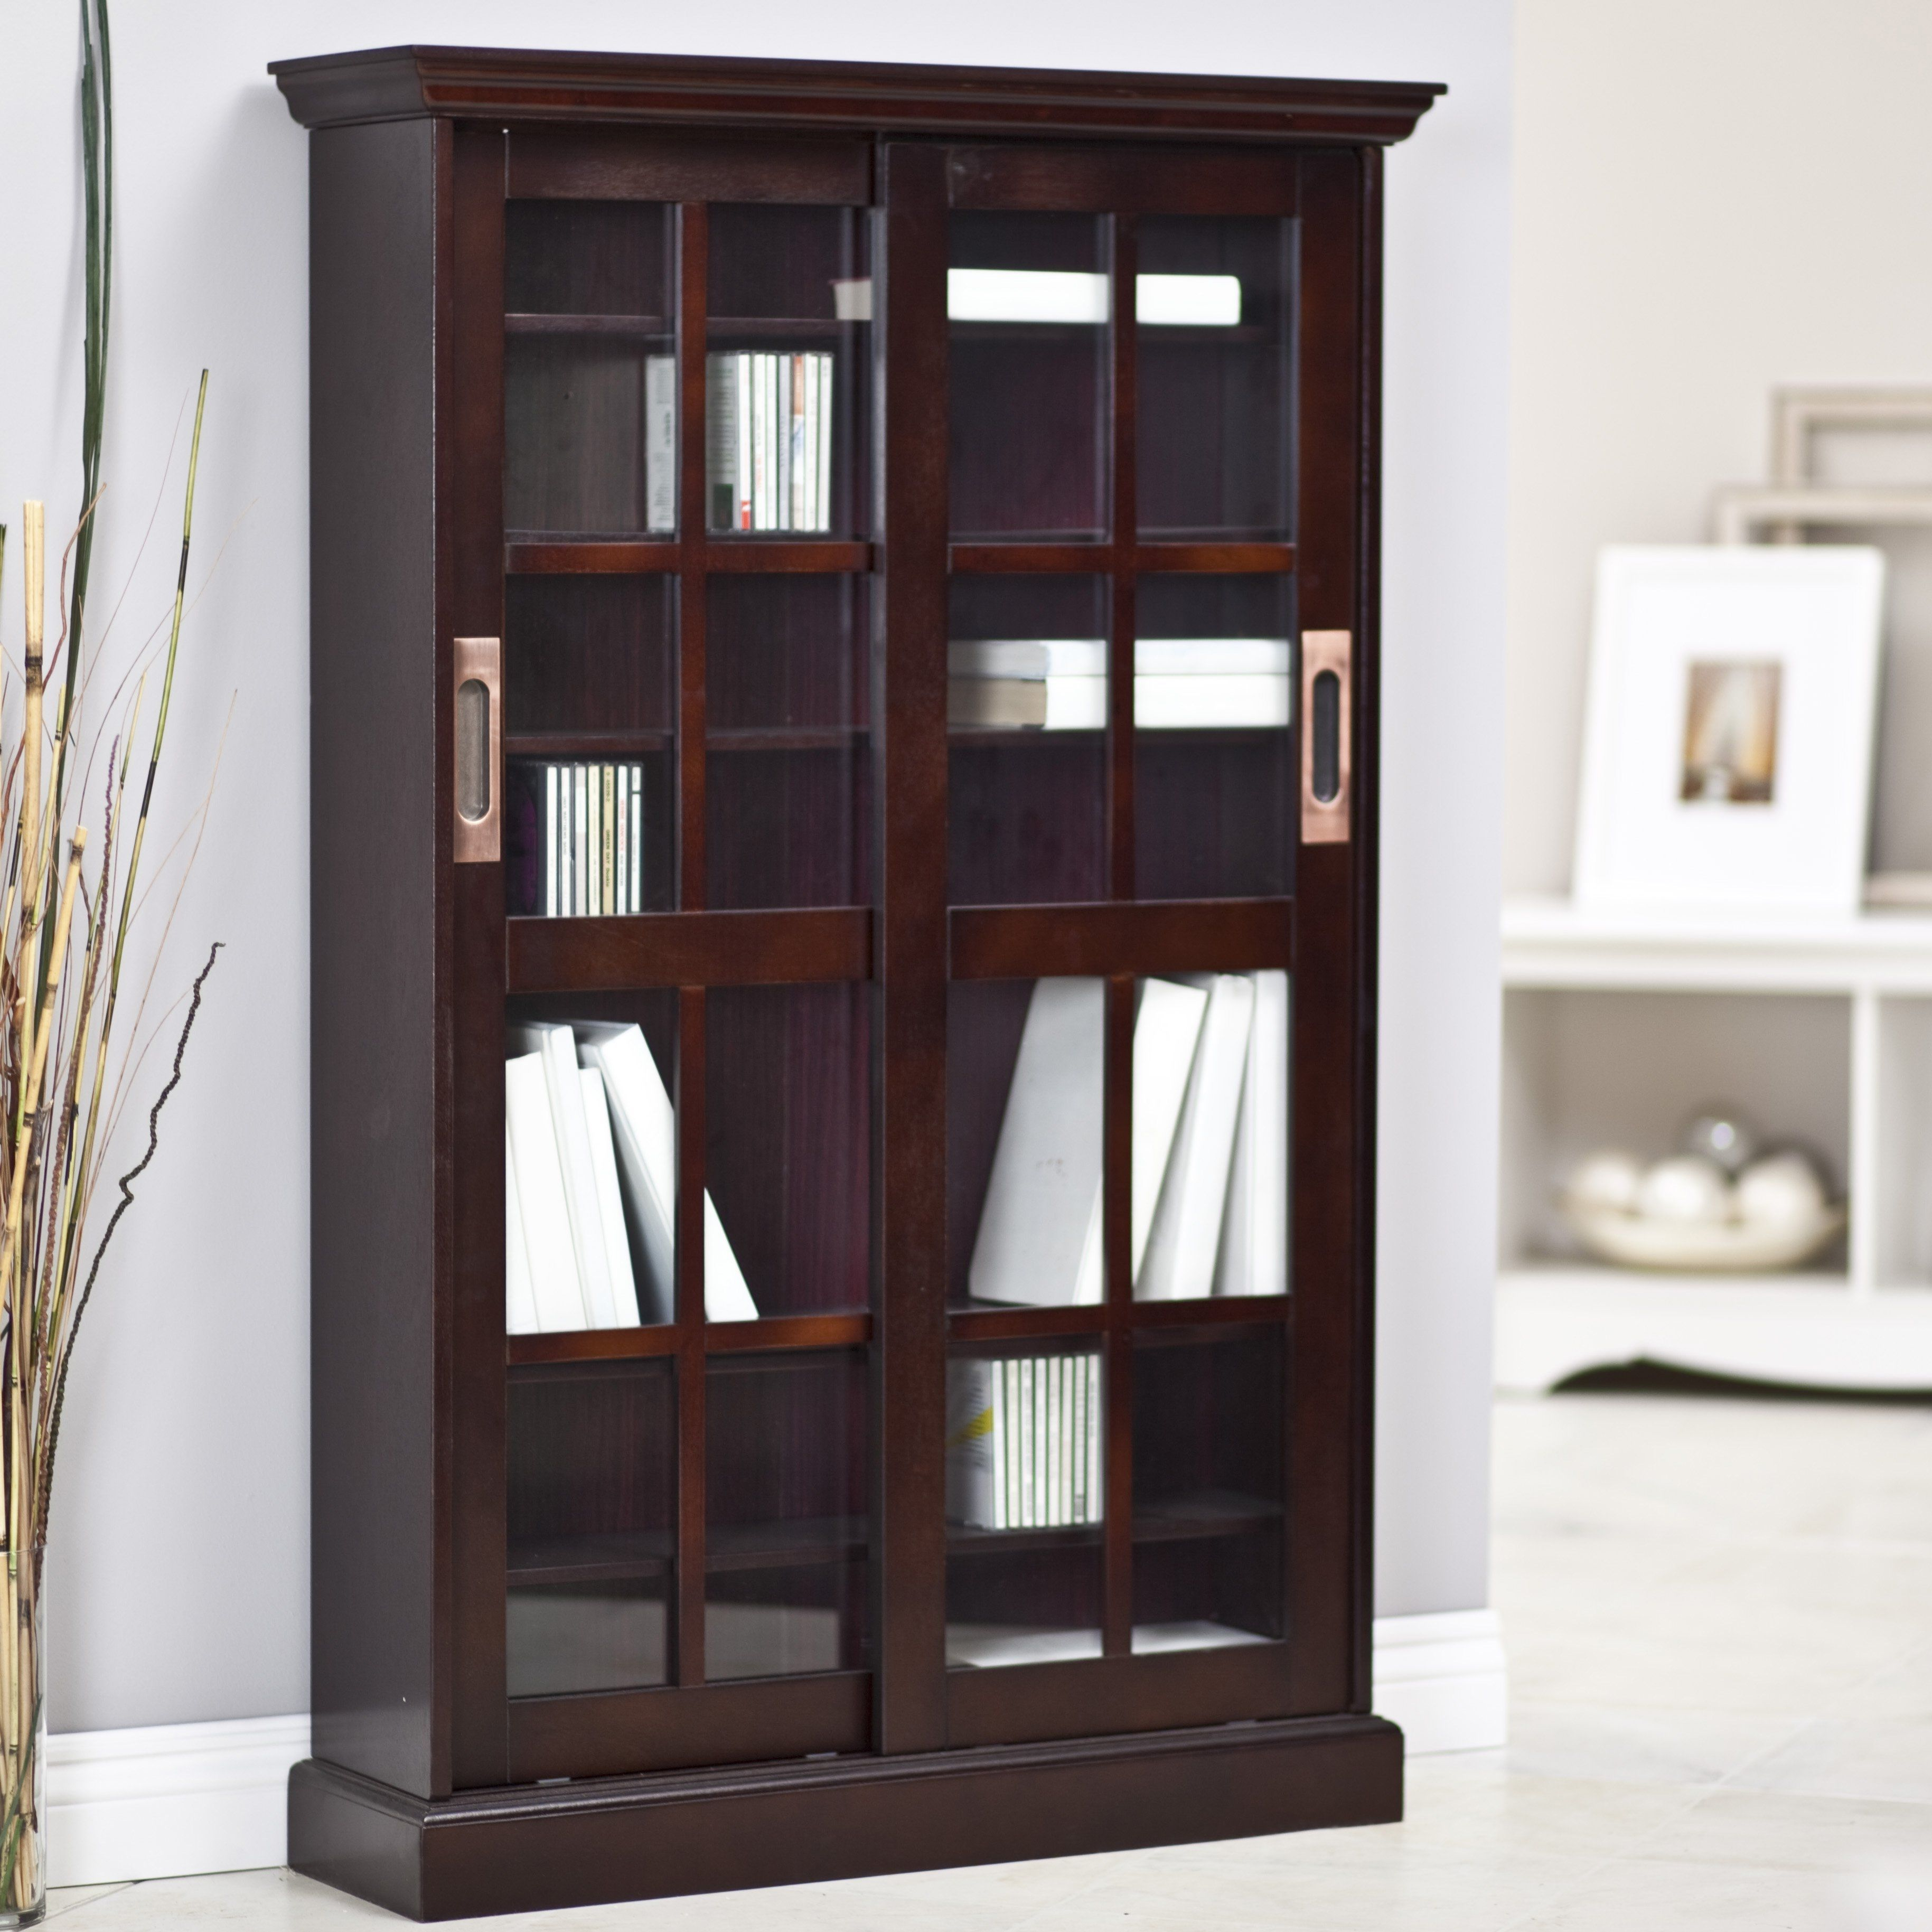 Tall Media Cabinet With Glass Doors Httpbetdaffaires